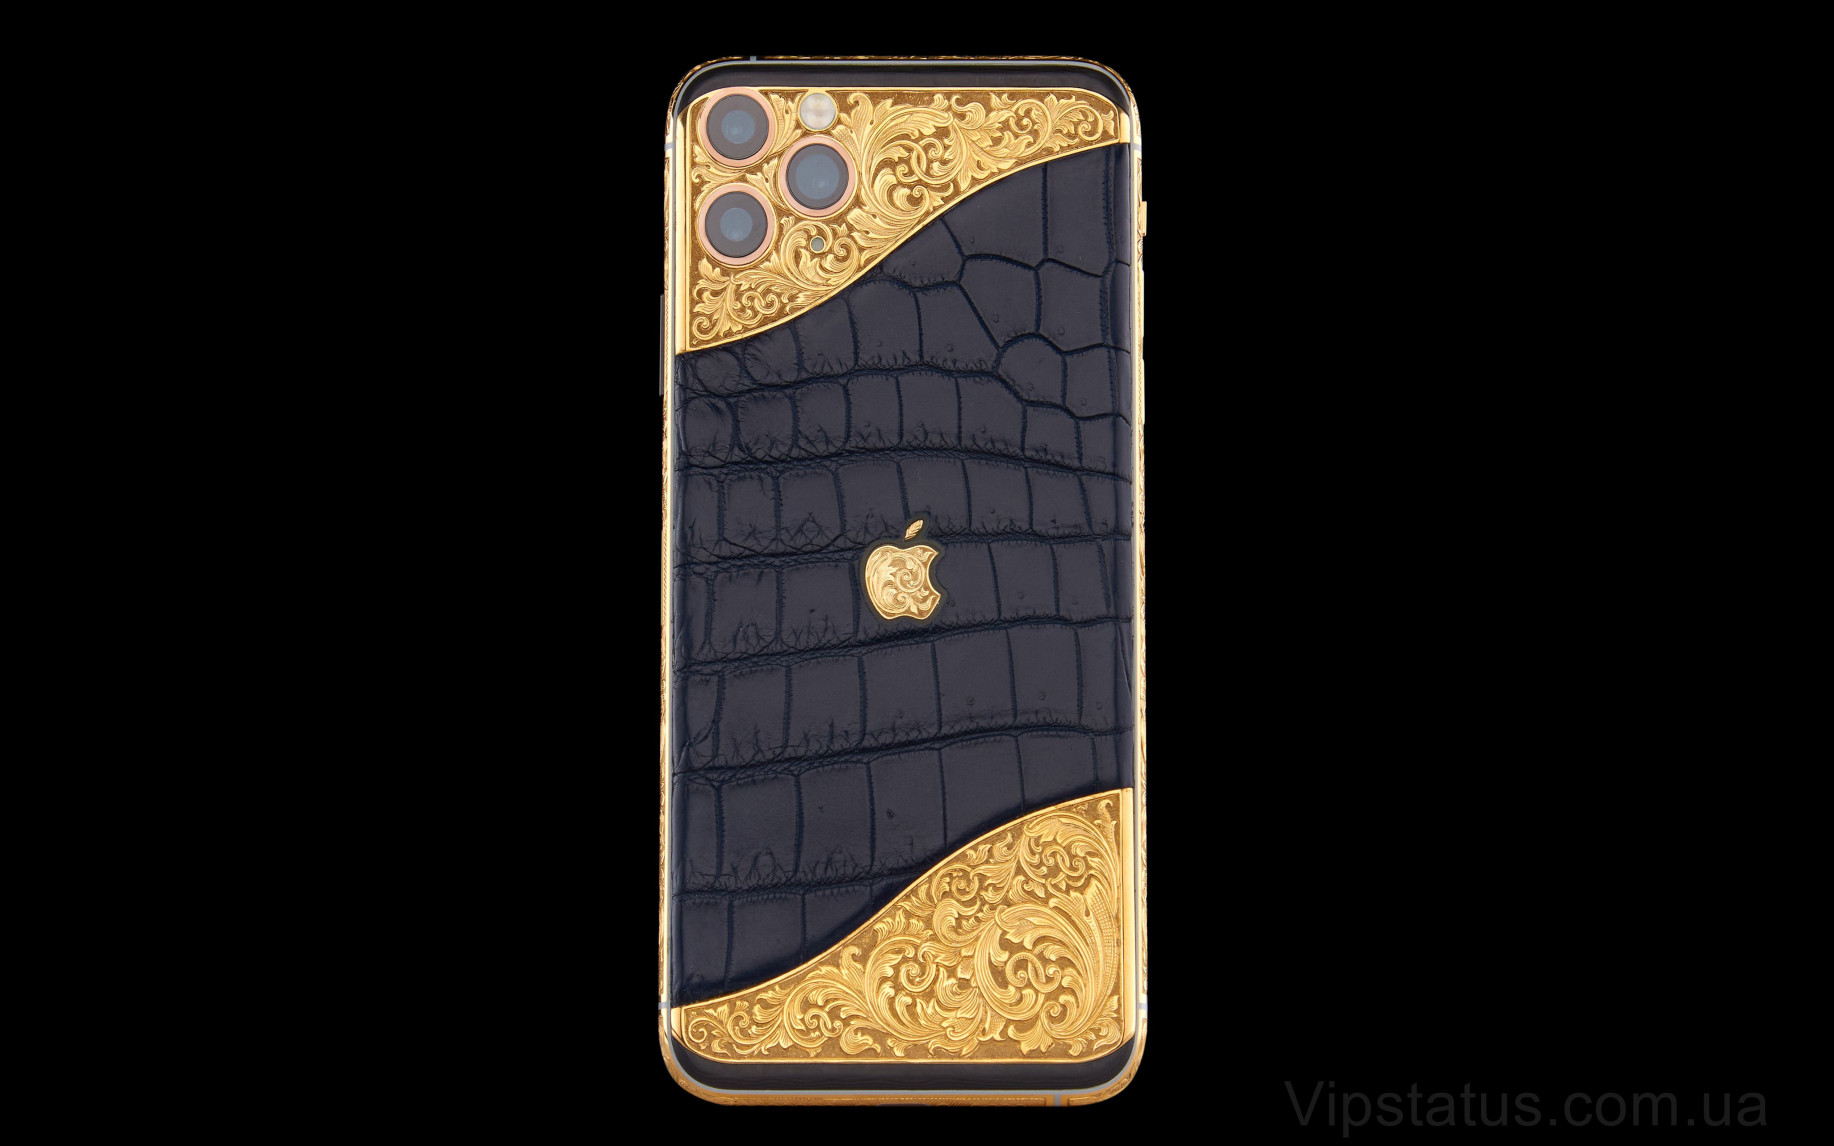 Elite Gold Aristocrate IPHONE 11 PRO 512 GB Gold Aristocrate IPHONE 11 PRO 512 GB image 4